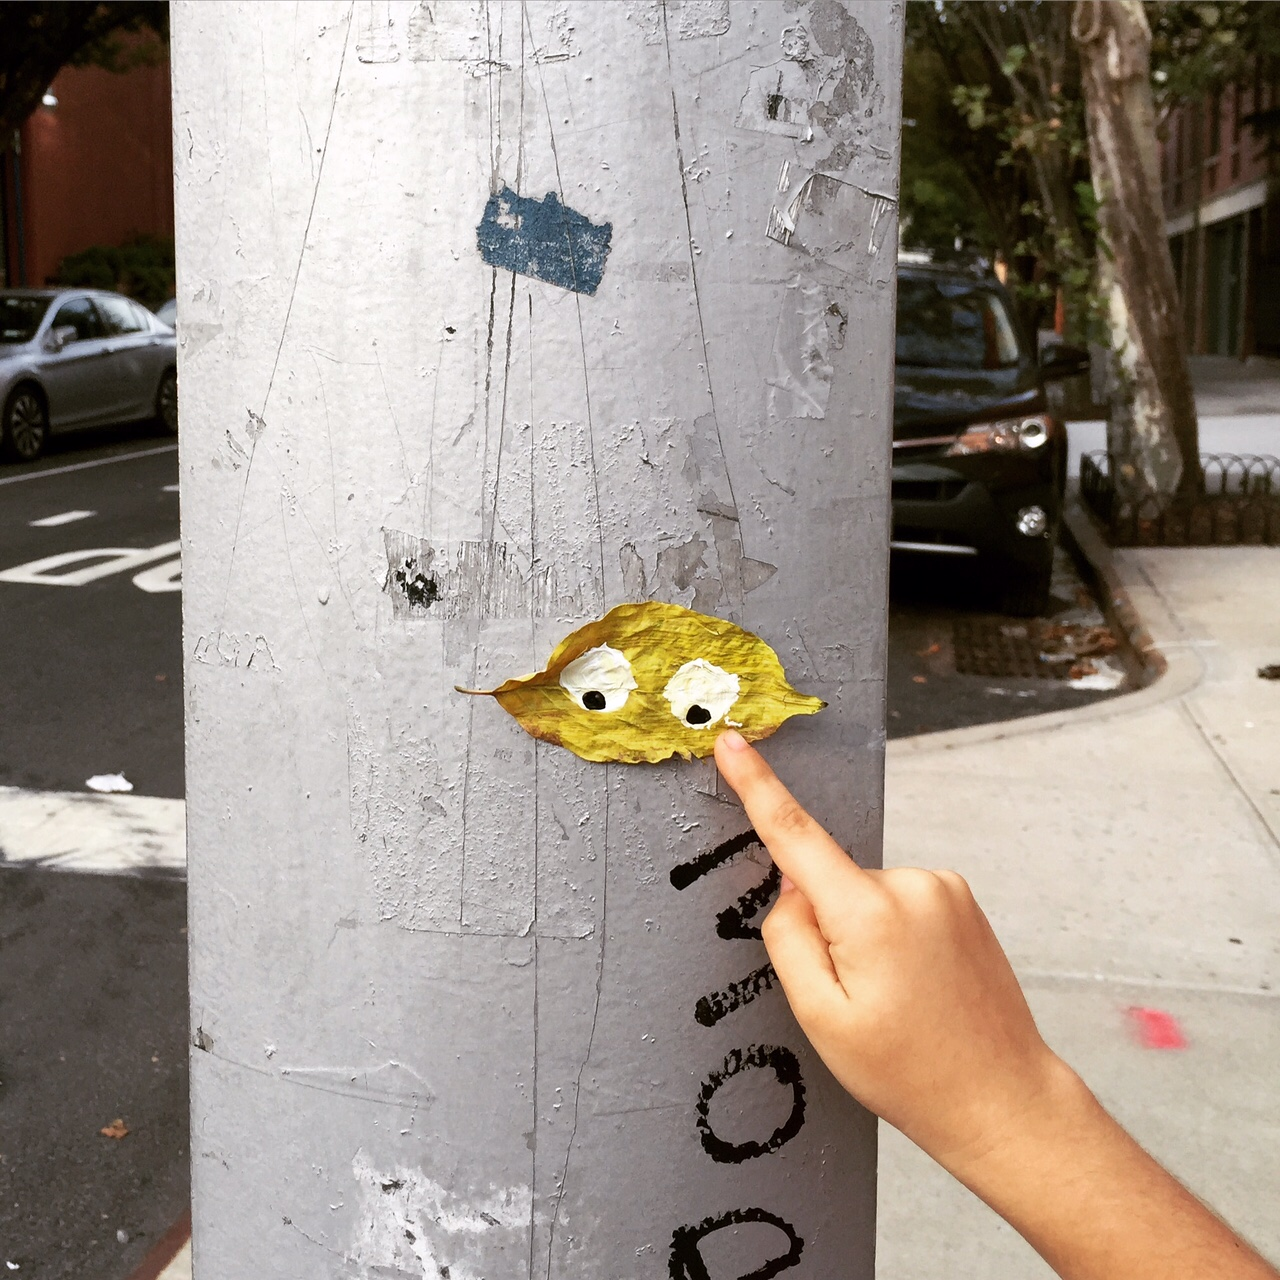 Stop sign poles love our family street art.